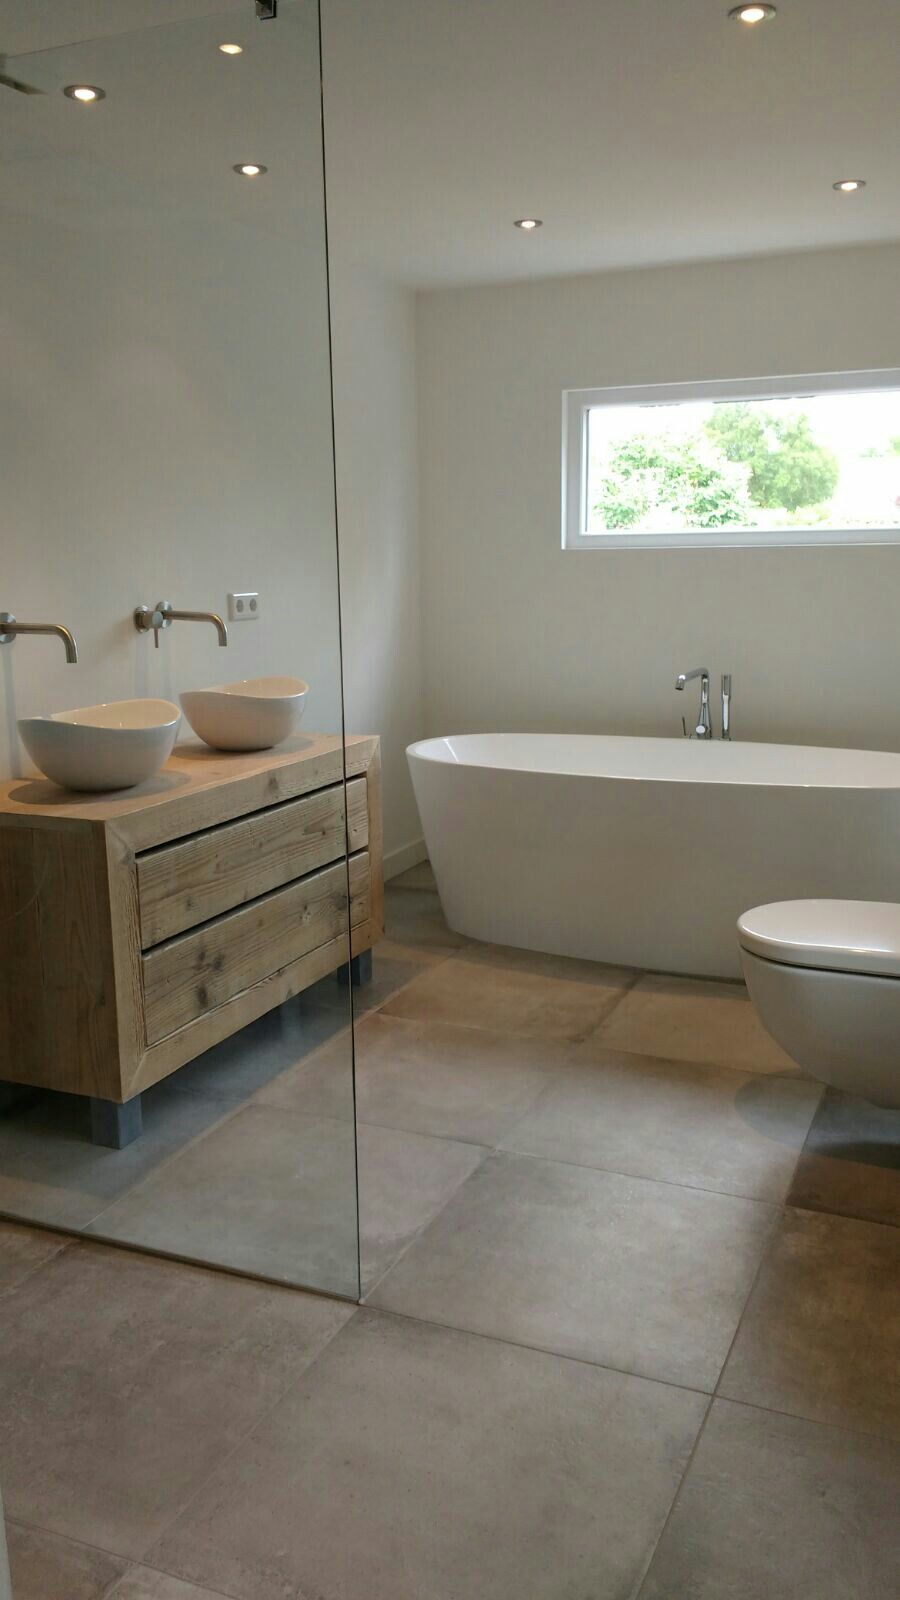 Badkamer betonlook tegel 60x60 | Bathroom | Pinterest | Interiors ...